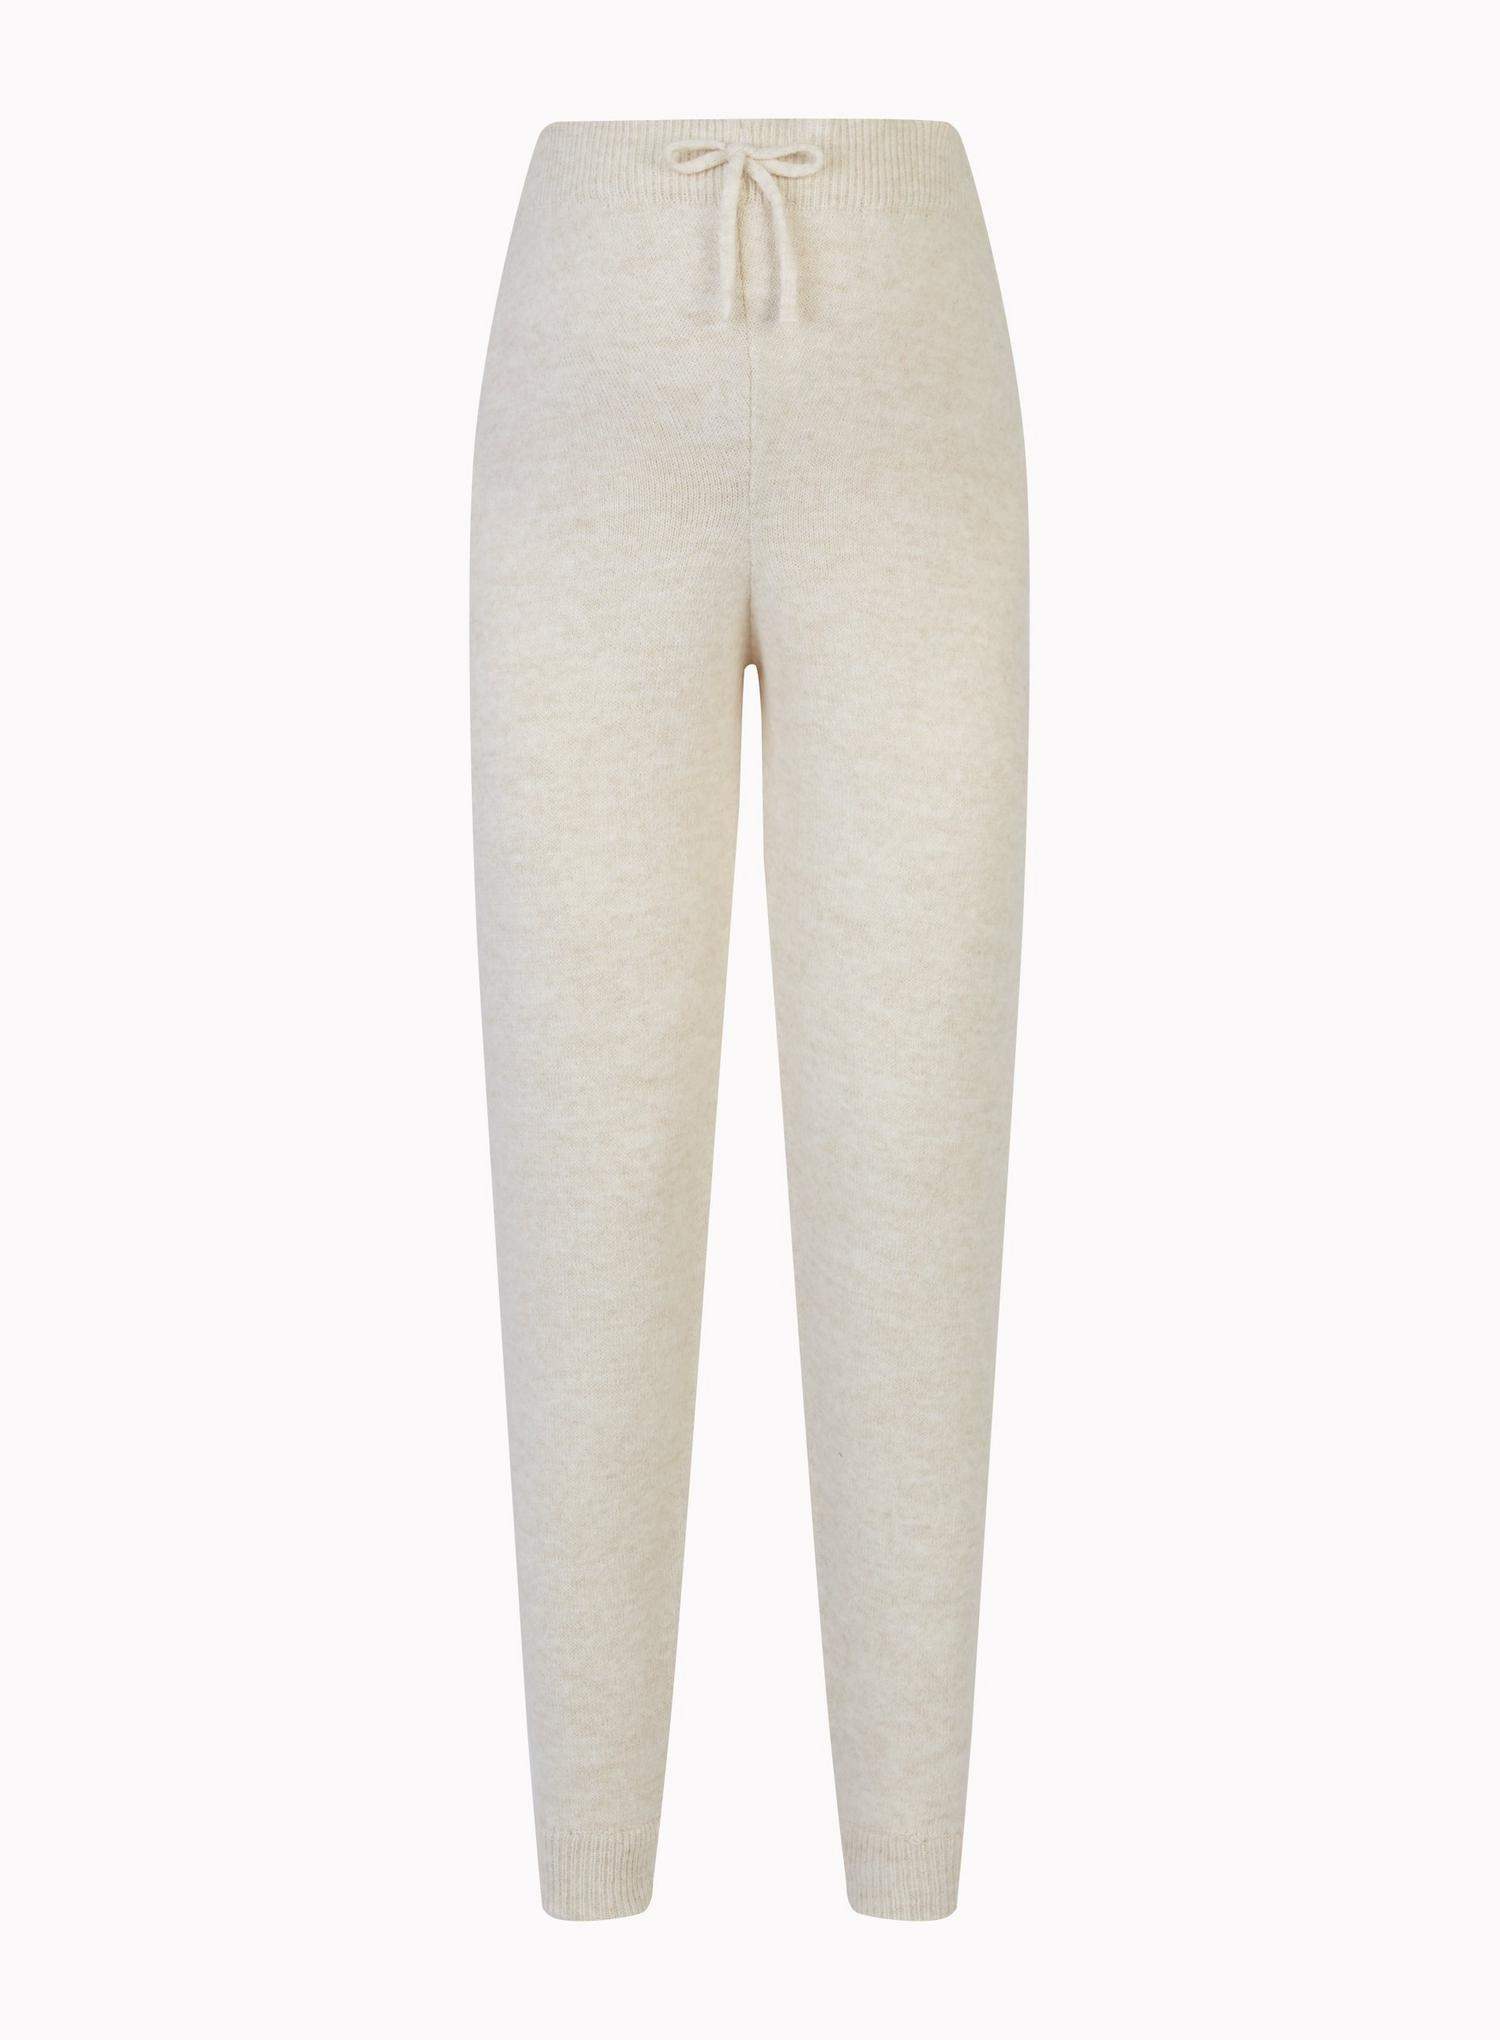 103 Maternity Beige Lounge Knitted Joggers image number 2